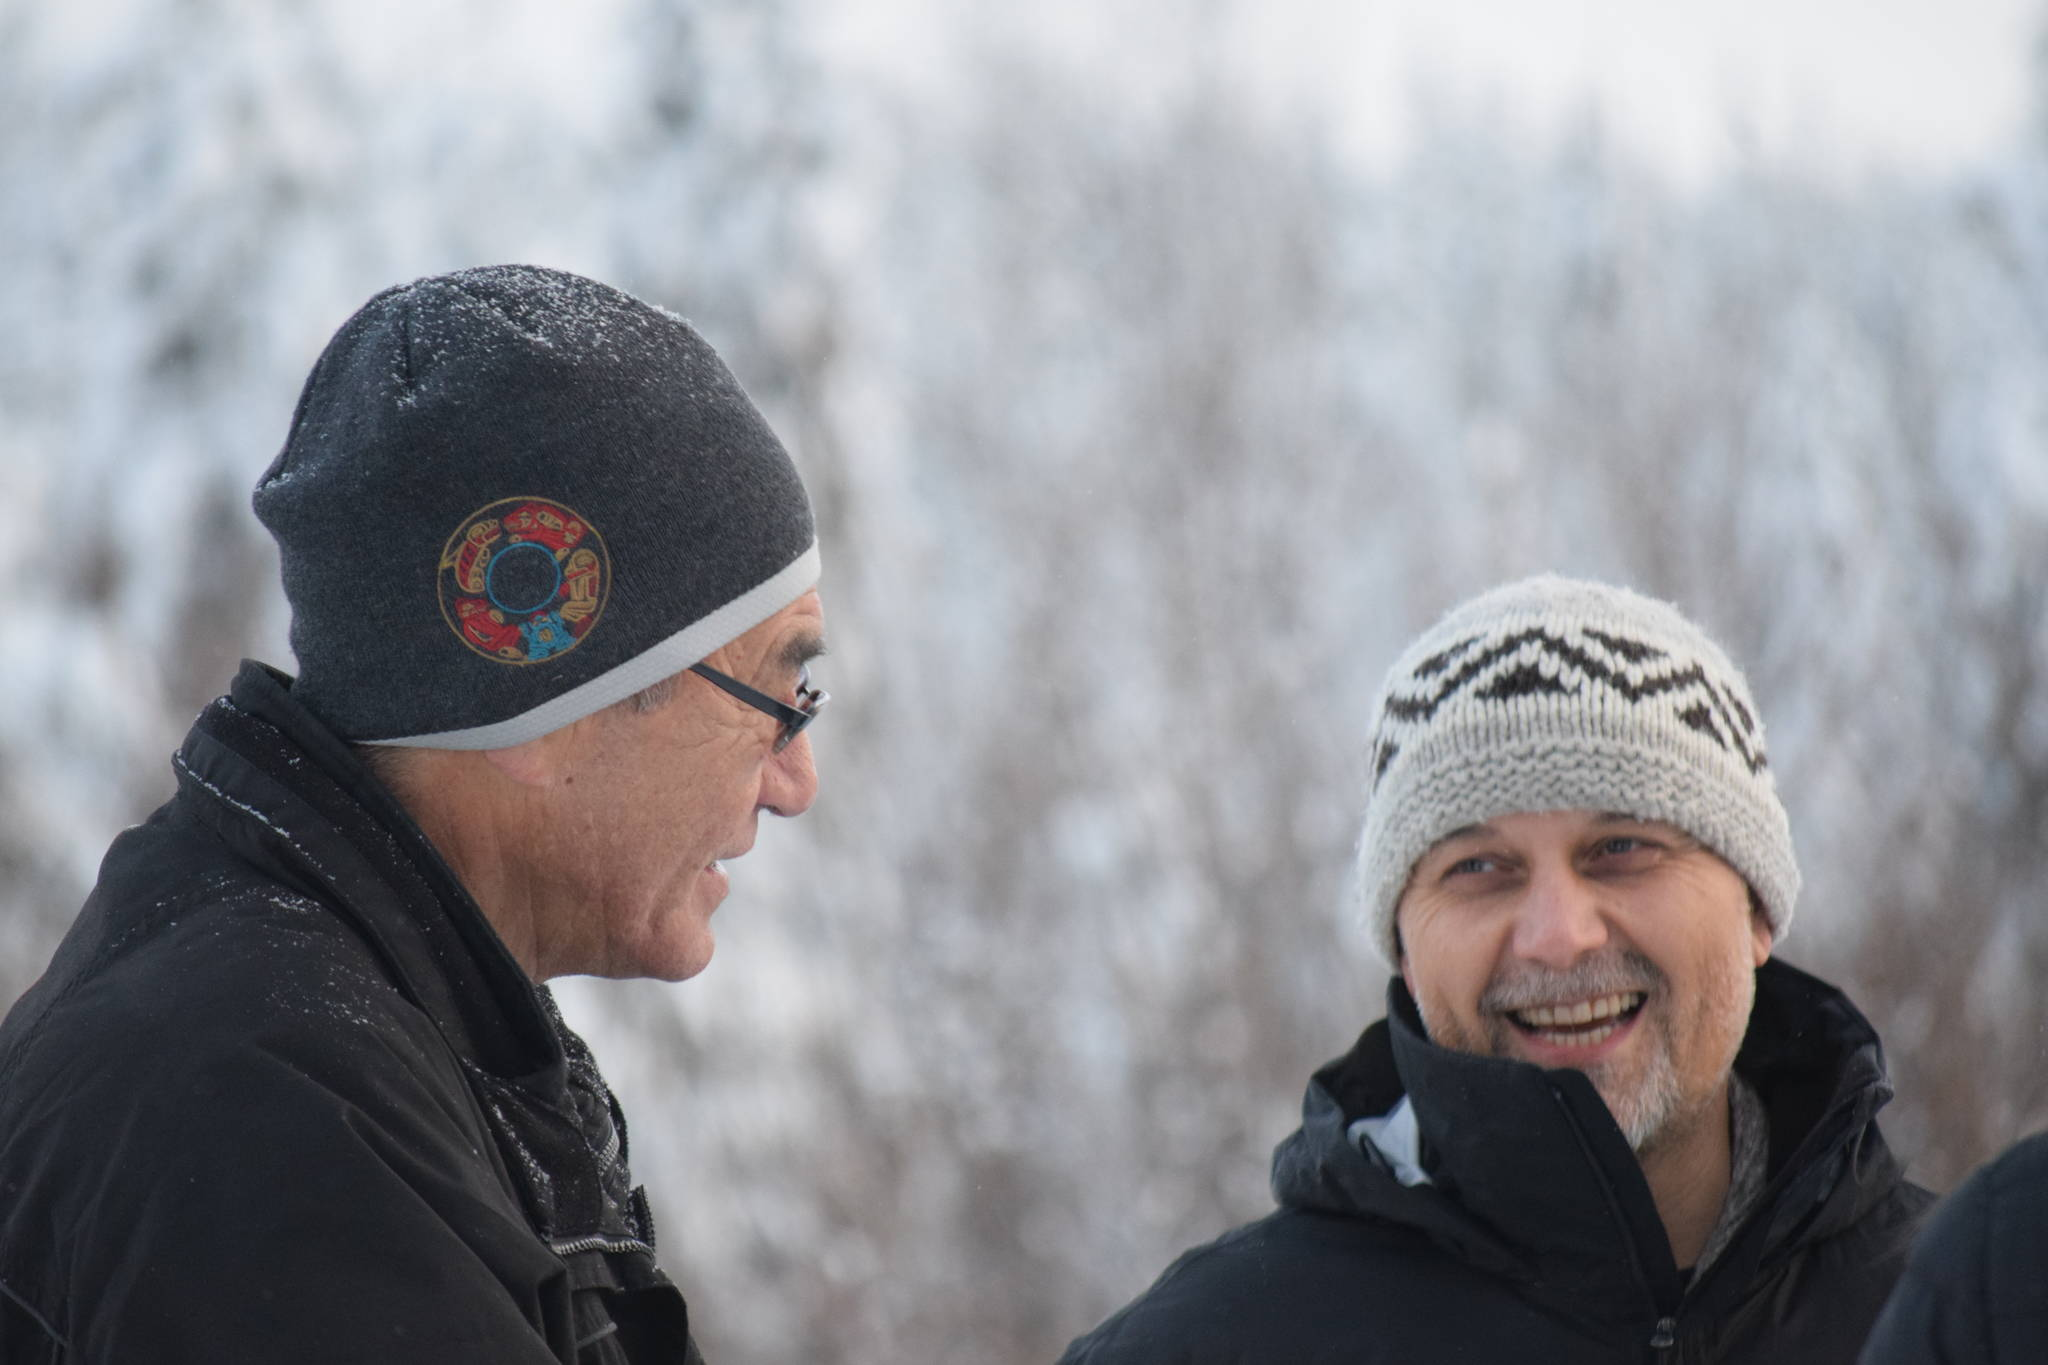 BC Green Party leader visits northern B.C. pipeline protest site